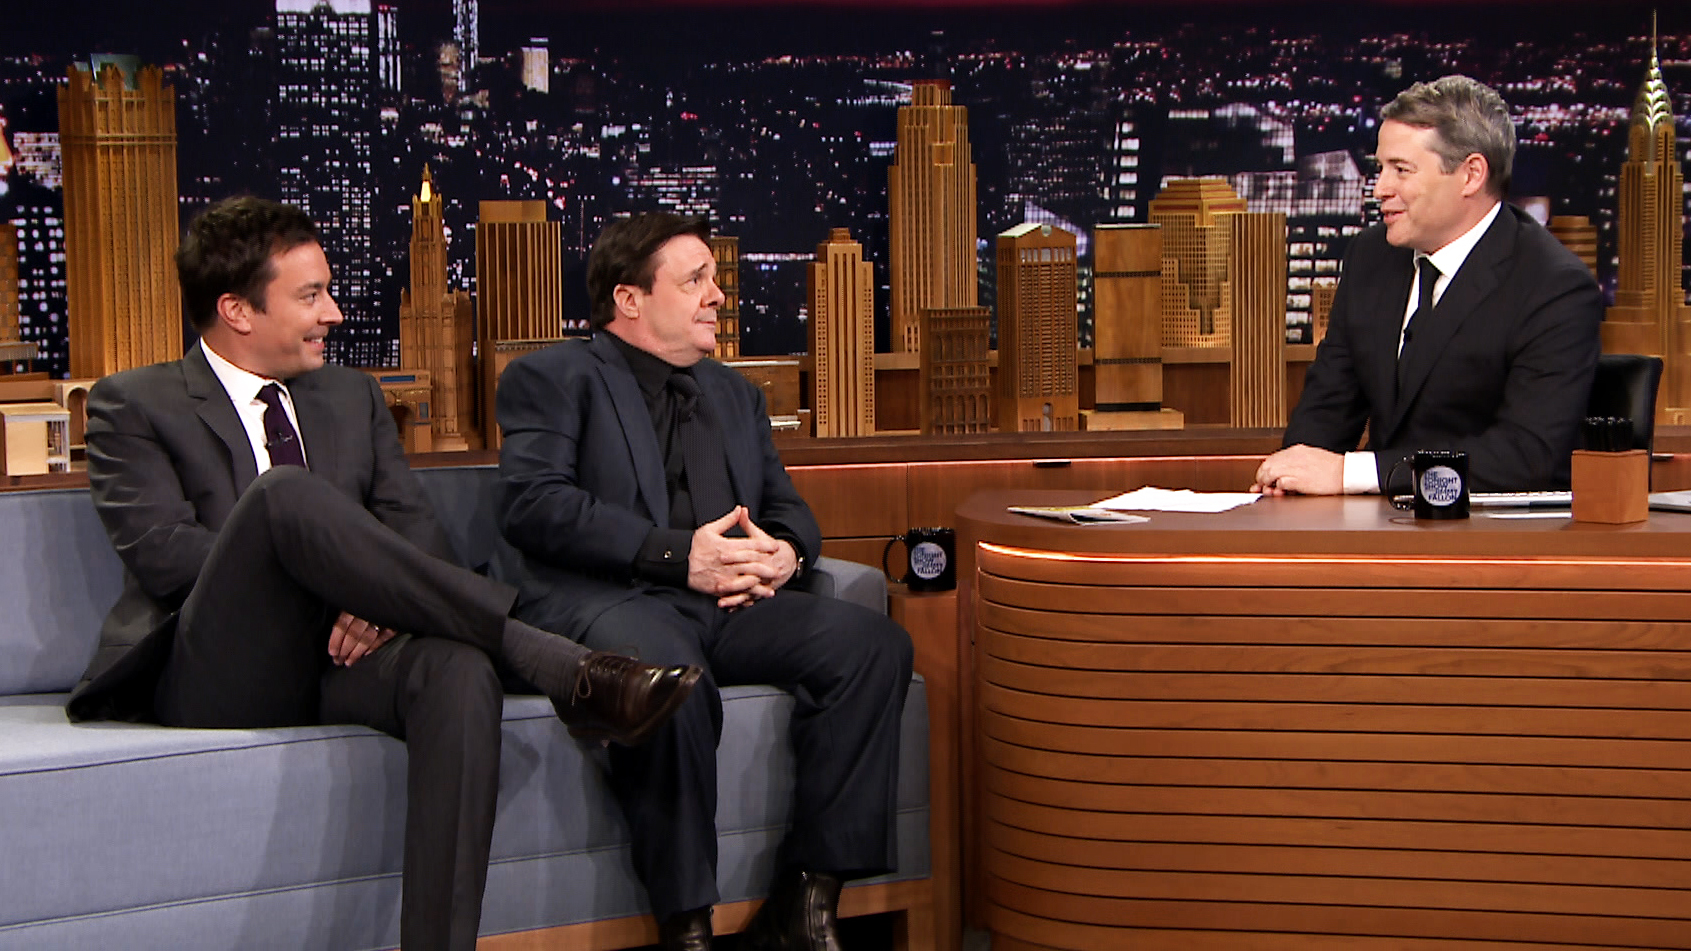 Matthew Broderick Nathan Lane And Jimmy Interview Each